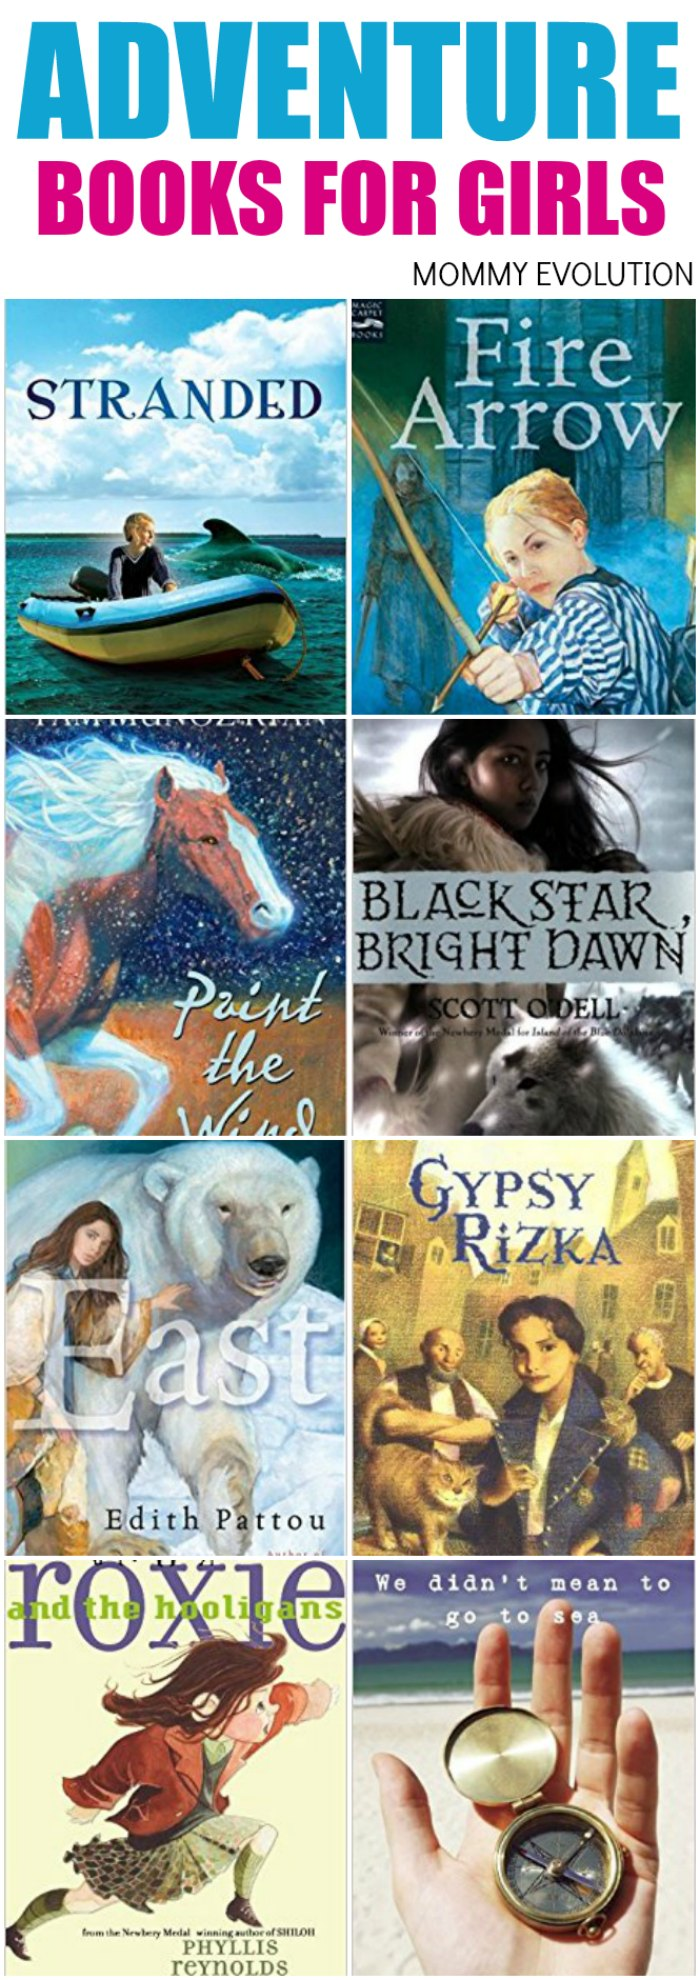 25 MORE Great Adventure Chapter Books for Girls | Mommy Evolution